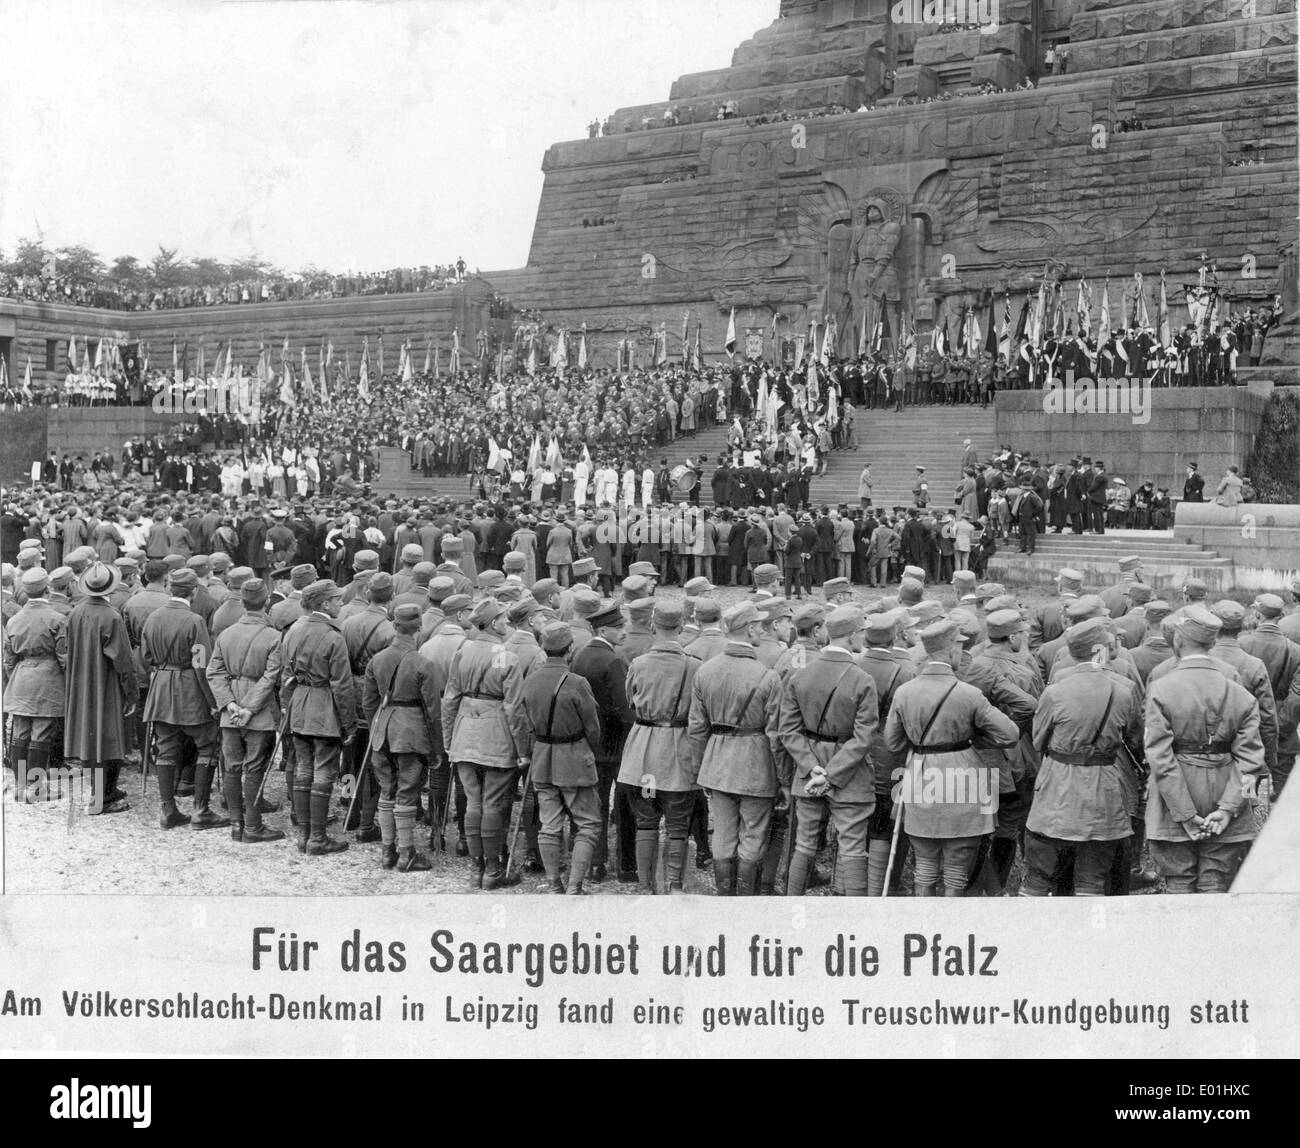 Protests in Leipzig against the autonomy movement in the Palatinate and Saarland, 1924 - Stock Image